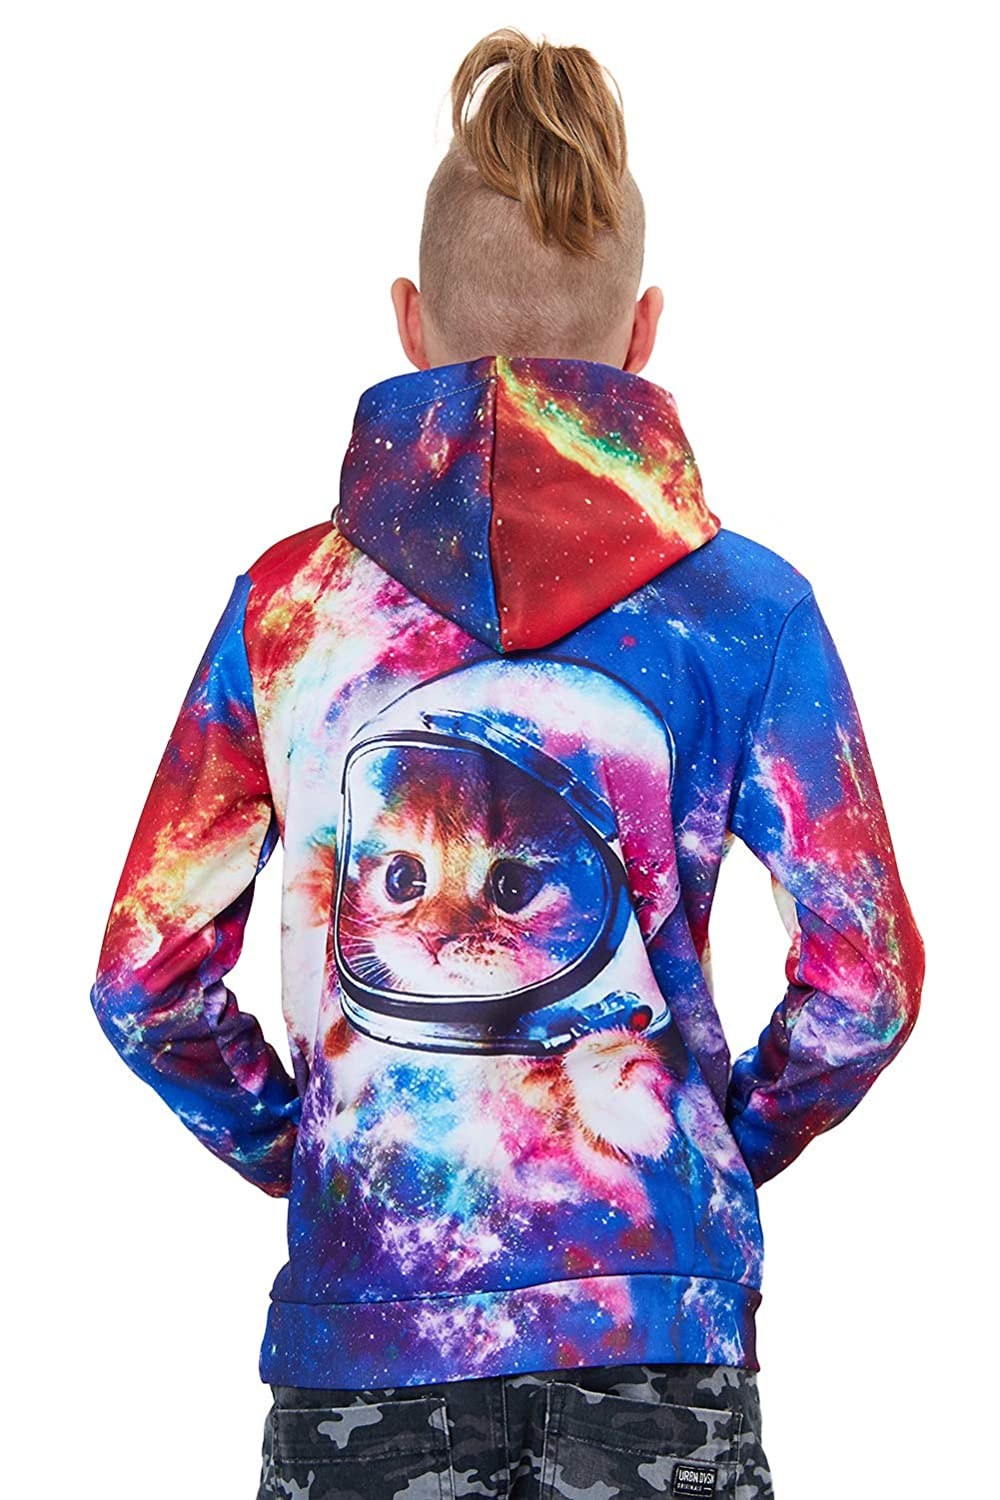 RAISEVERN/Unisex Child Hoodie/3D/Printed/Fleece/Casual/Novelty/Pullover/Hooded/Sweatshirt/for/Boys/Girls/Age/3-14